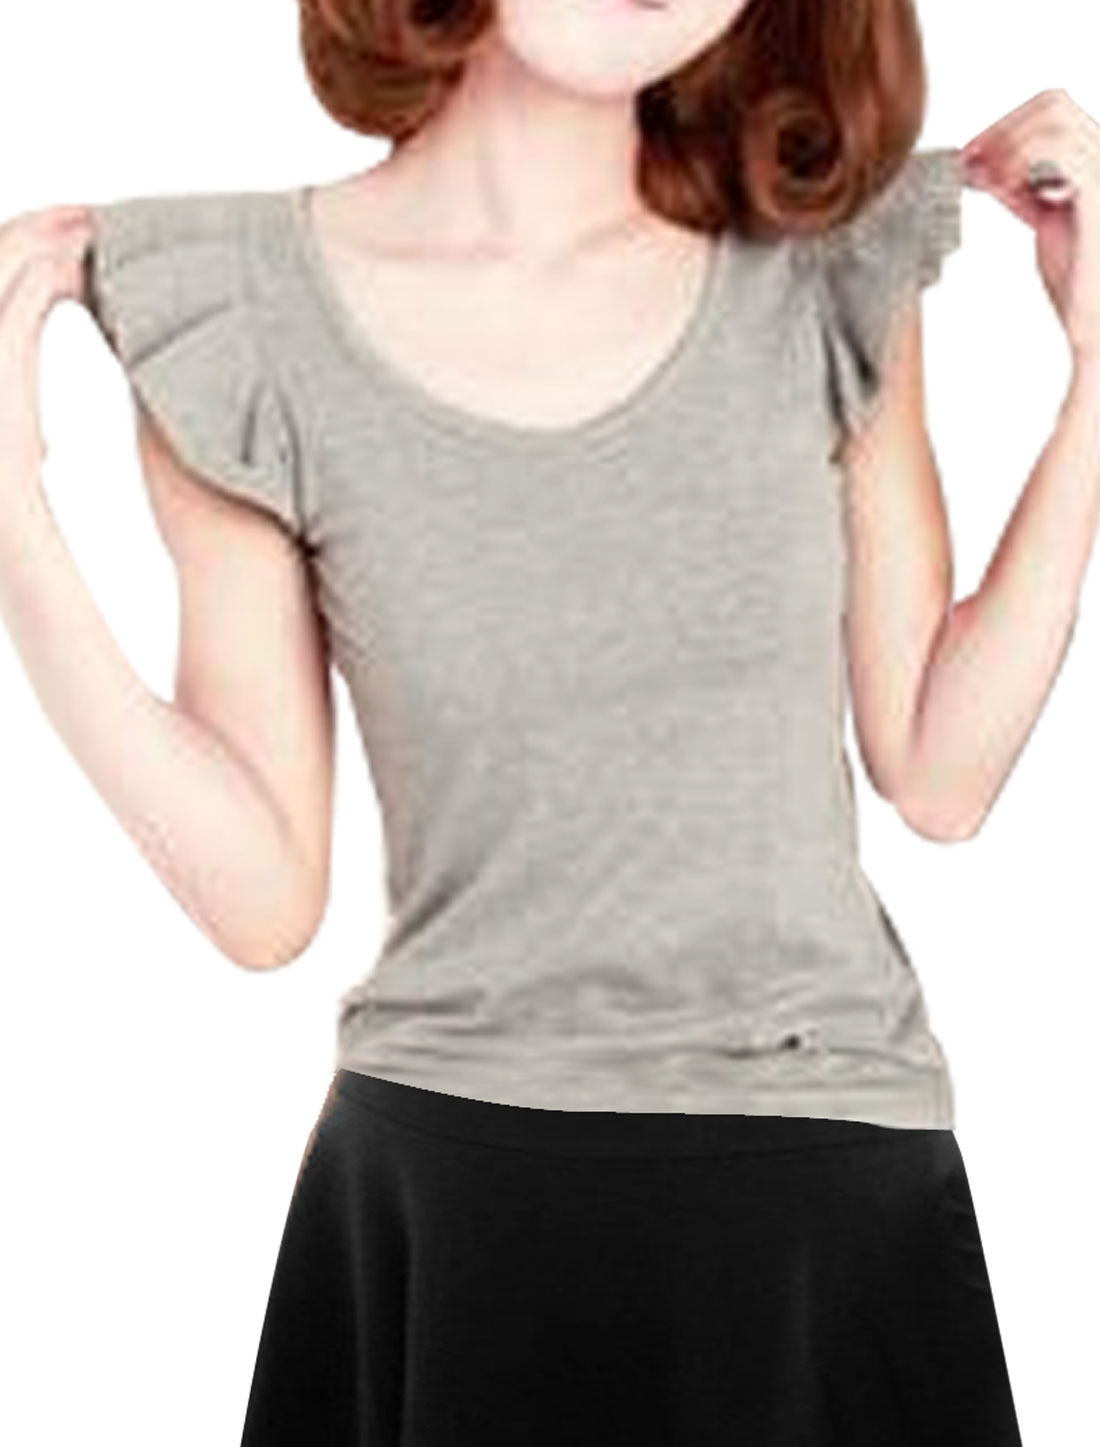 Women Medium Gray Scoop Neck Stretchy Formfitting Short Flouncing Sleeve Shirt XS